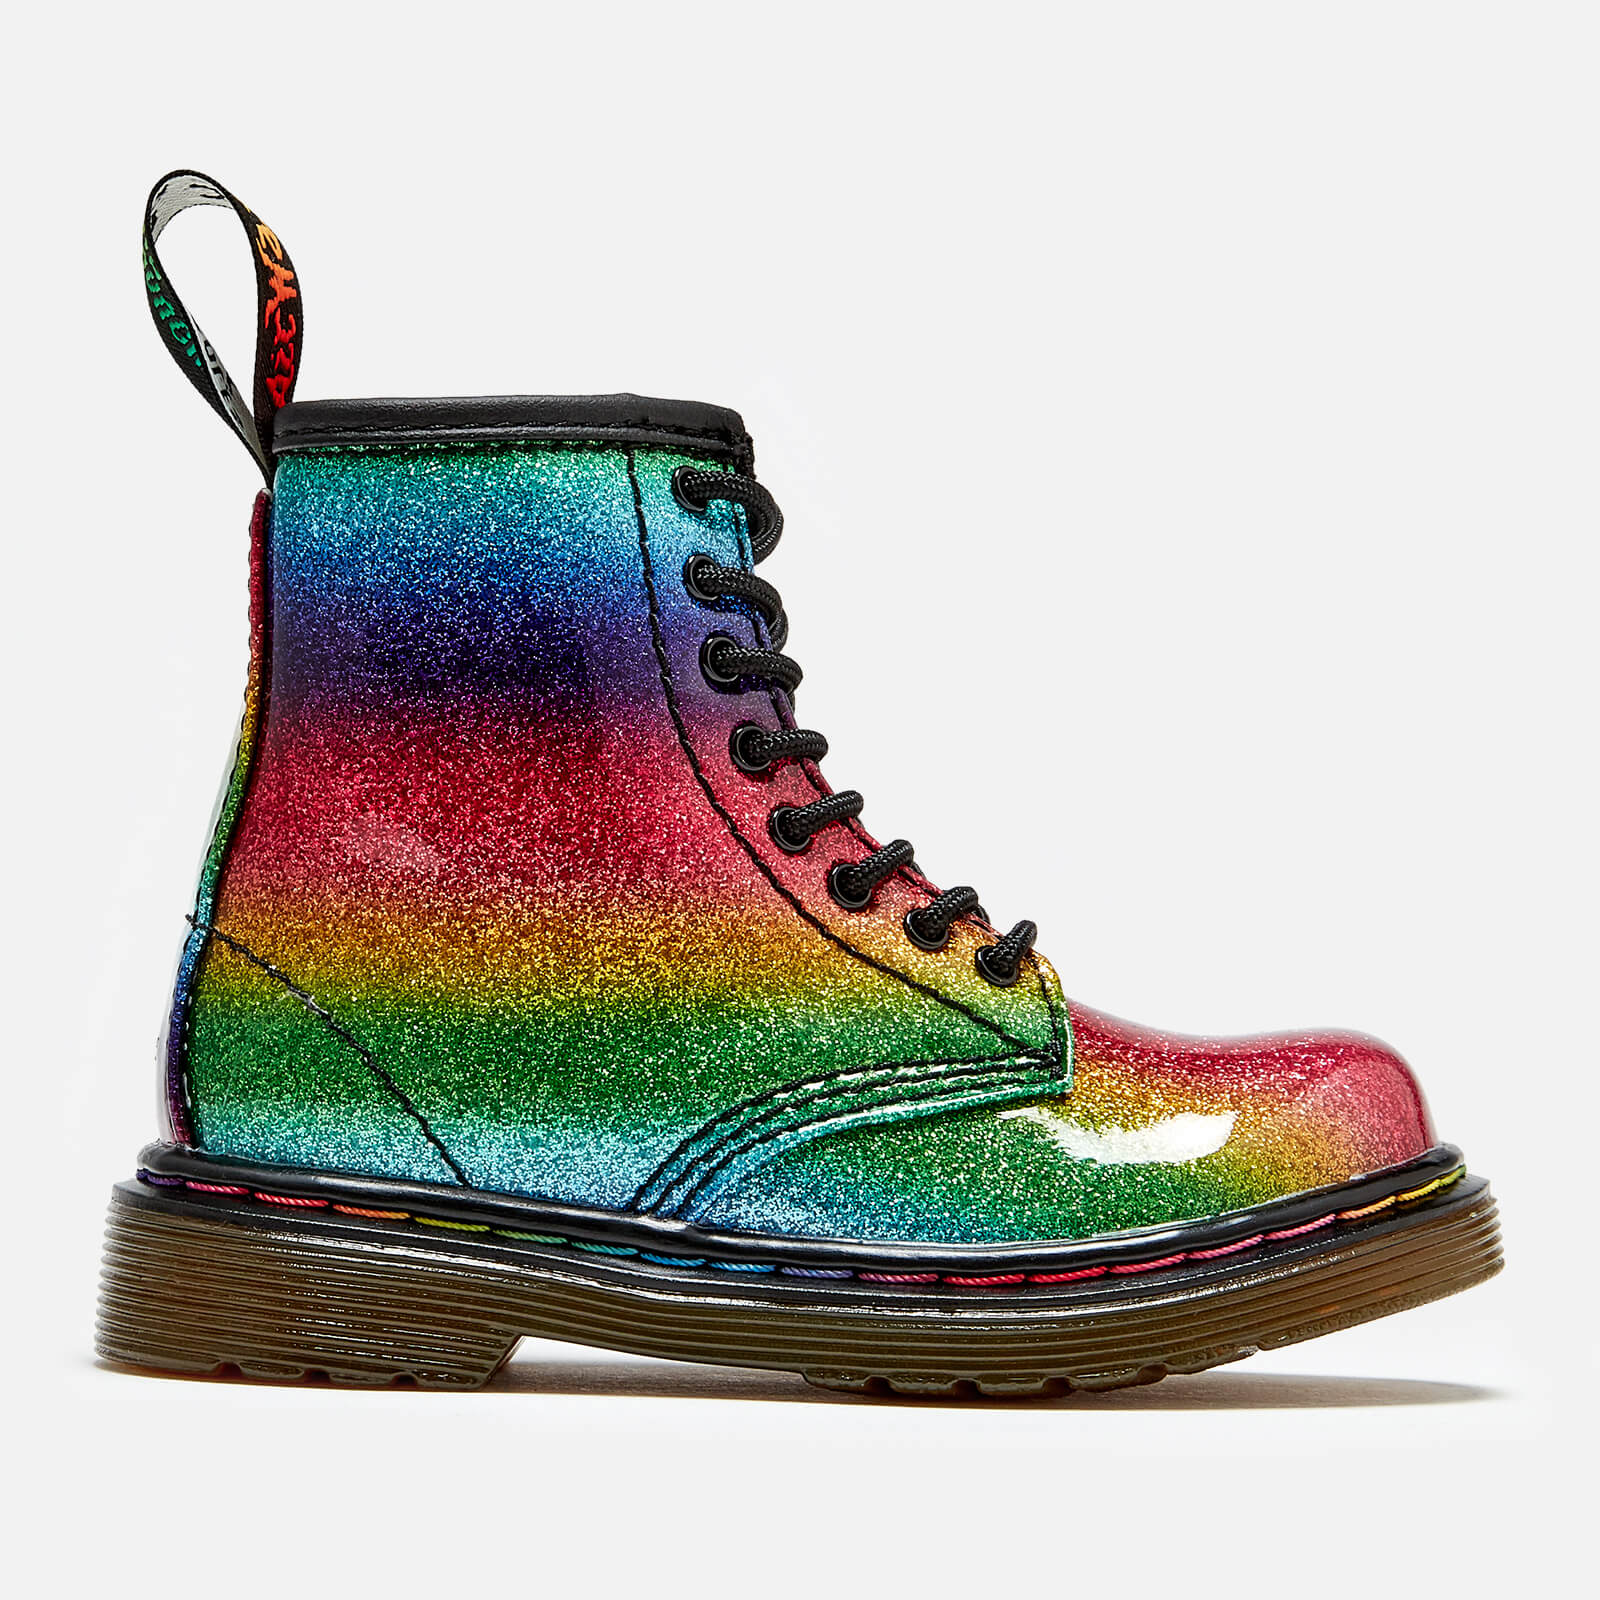 31aa62e5ac69 Dr. Martens Toddler's 1460 Ombre Glitter Patent 8-Eye Boots - Rainbow  Junior Clothing | TheHut.com